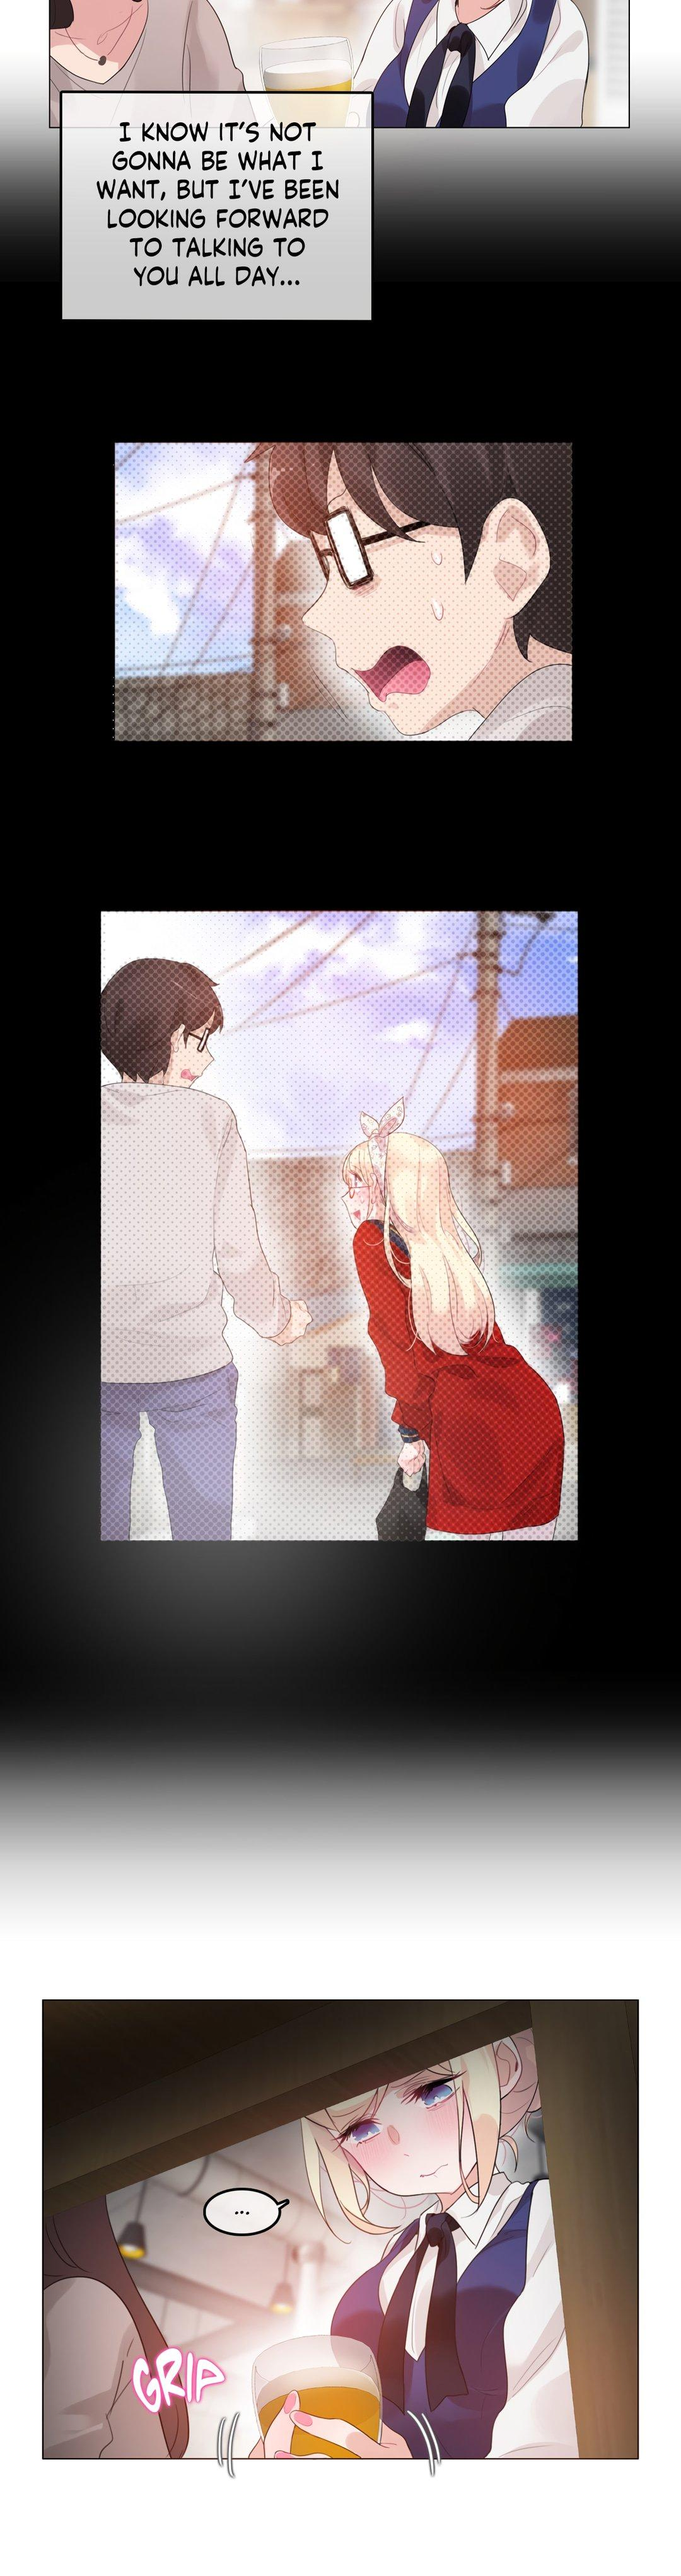 A Pervert's Daily Life Ch. 35-71 405